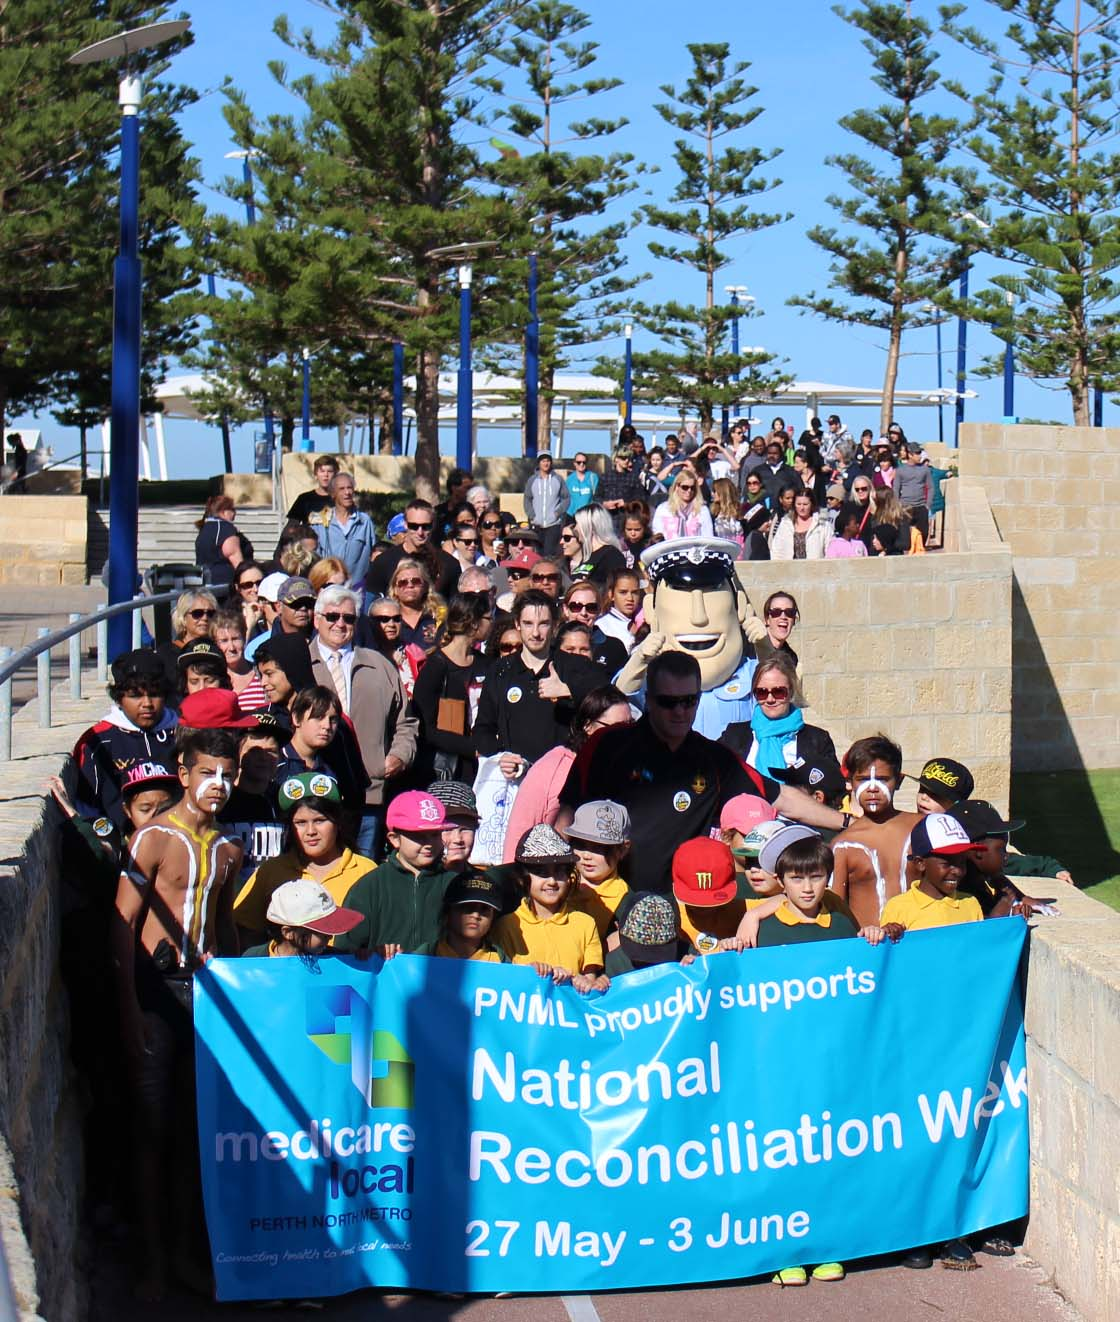 Walking for reconciliation in Scarborough during National Reconciliation Week.